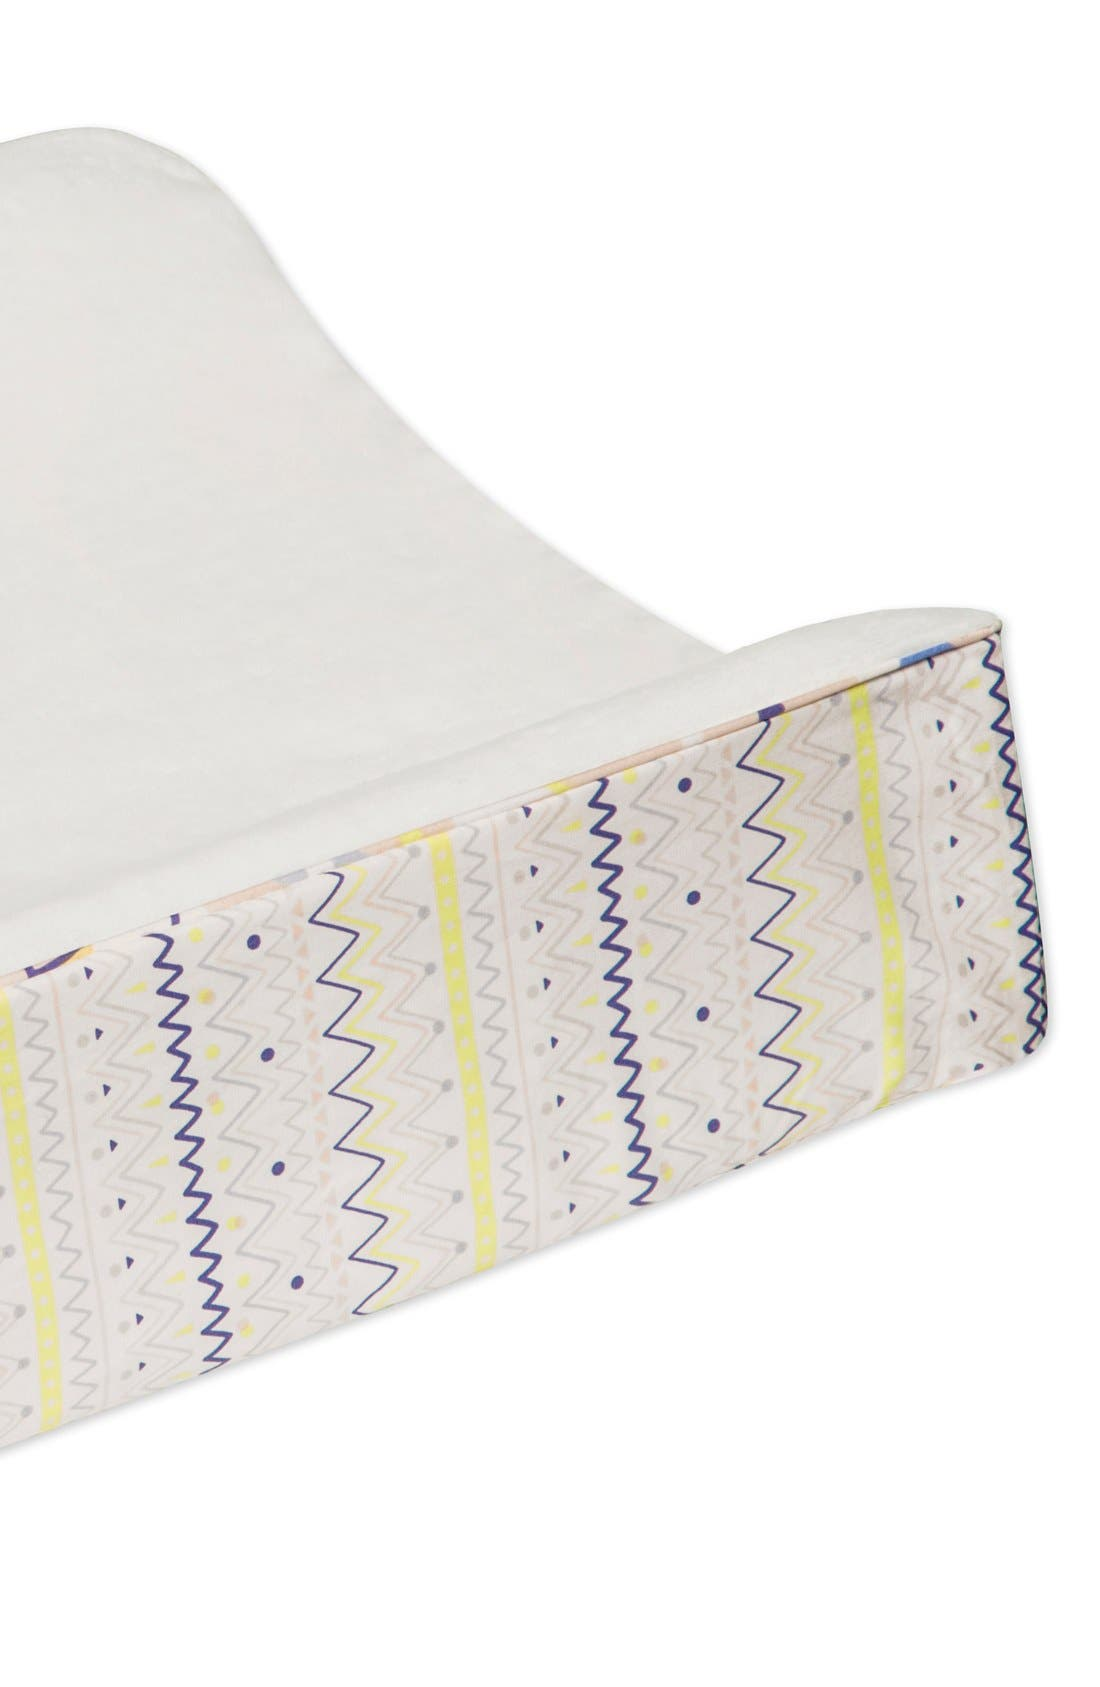 BABYLETTO, 'Desert' Crib Sheet, Crib Skirt, Changing Pad Cover, Blanket & Wall Decals, Alternate thumbnail 2, color, 900